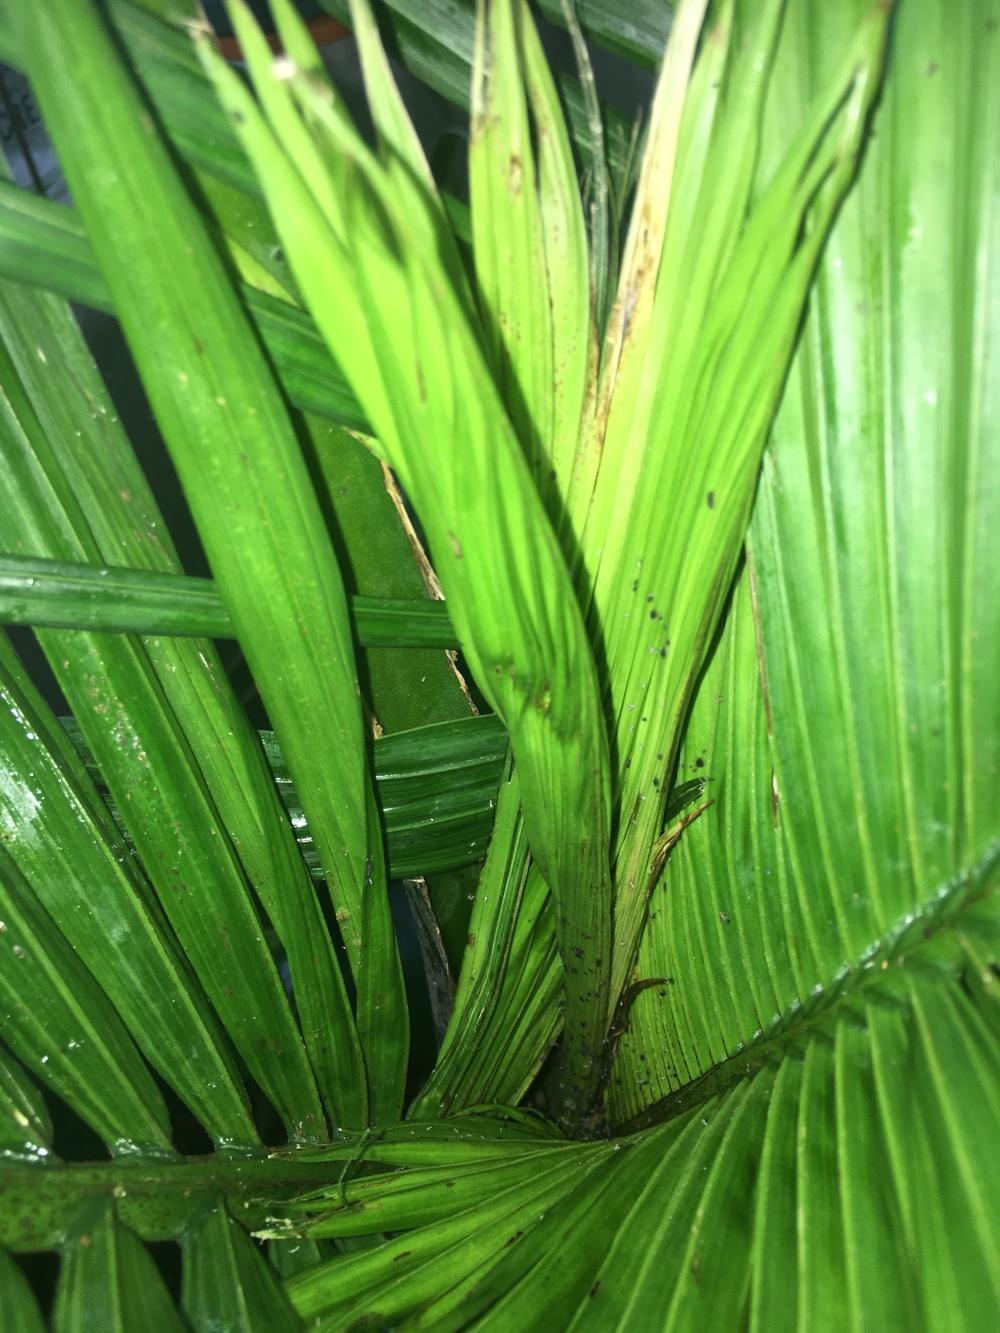 Majestic palm pest - Knowledgebase Question - Garden org